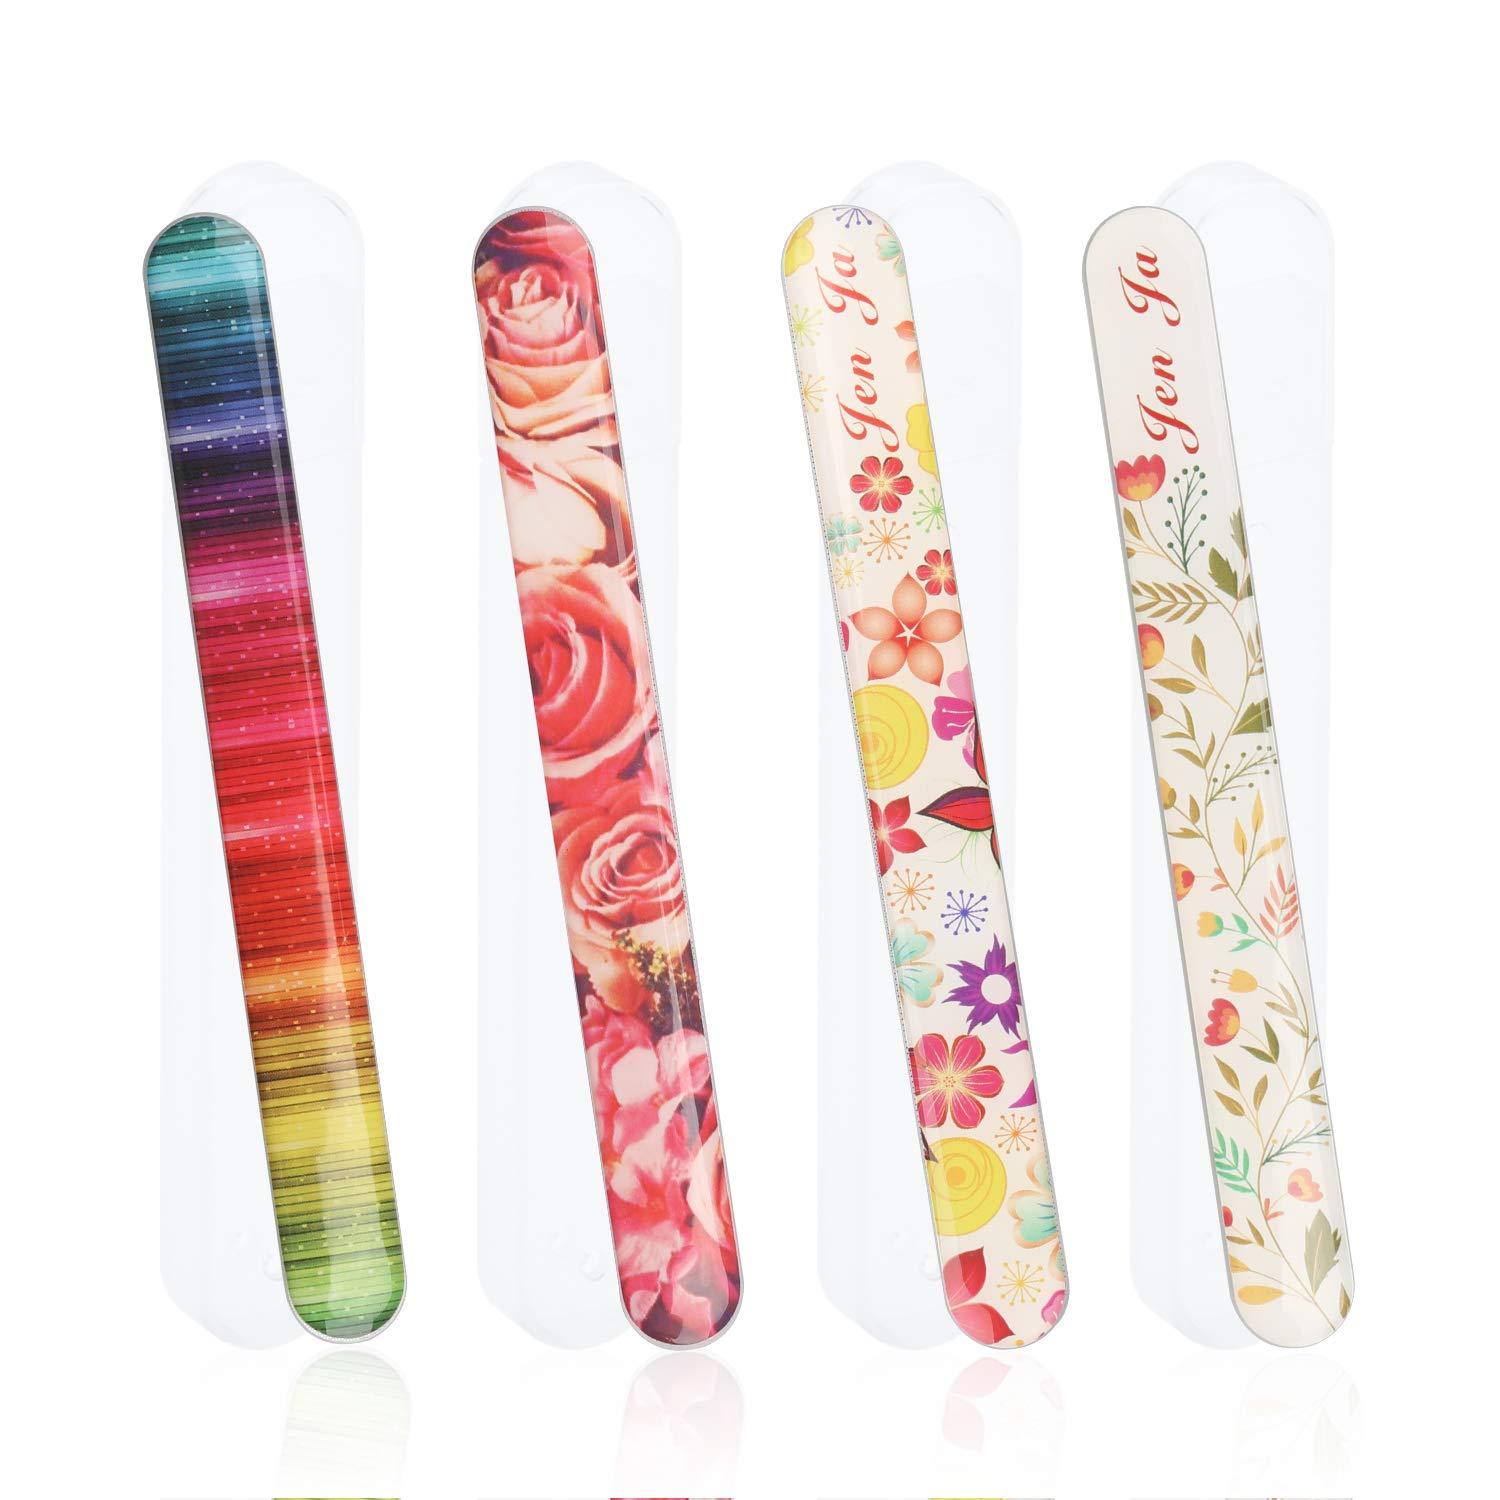 Senignol 4 Pieces Nano Glass Nail Shiner Kit, Crystal Rainbow Flowers Nail Shine Buffers Polisher, Professional Manicure Glass Nail Files with Protective Case for Salon &Home Natural Nail Art Use